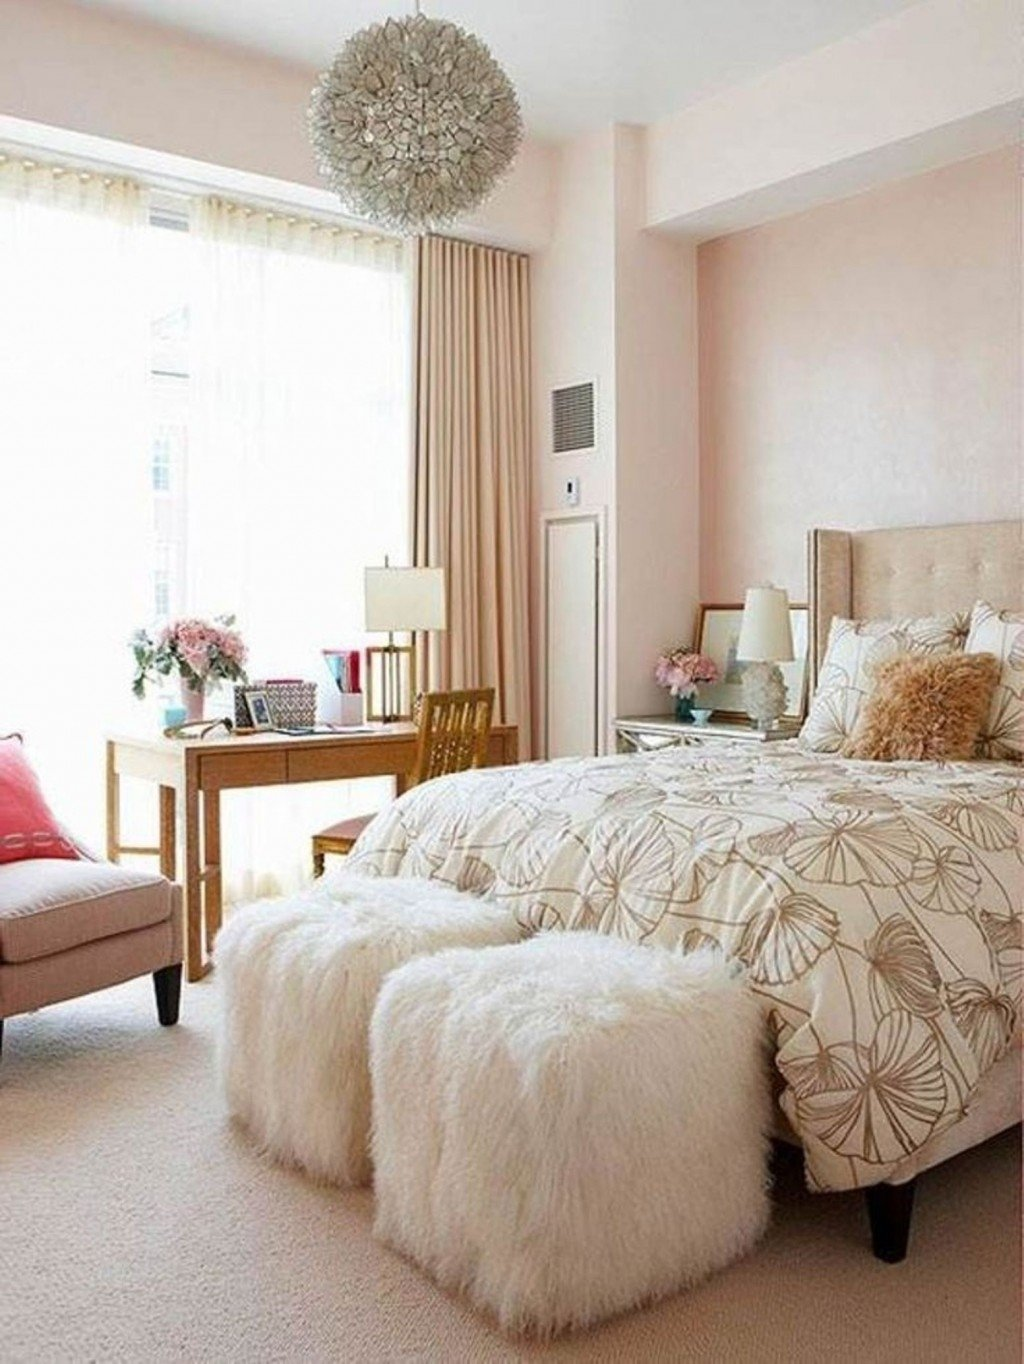 10 Fabulous Bedroom Ideas For Young Adults o fancy gallery bedroom ideas for young adults bedroom ideas for 1 2021